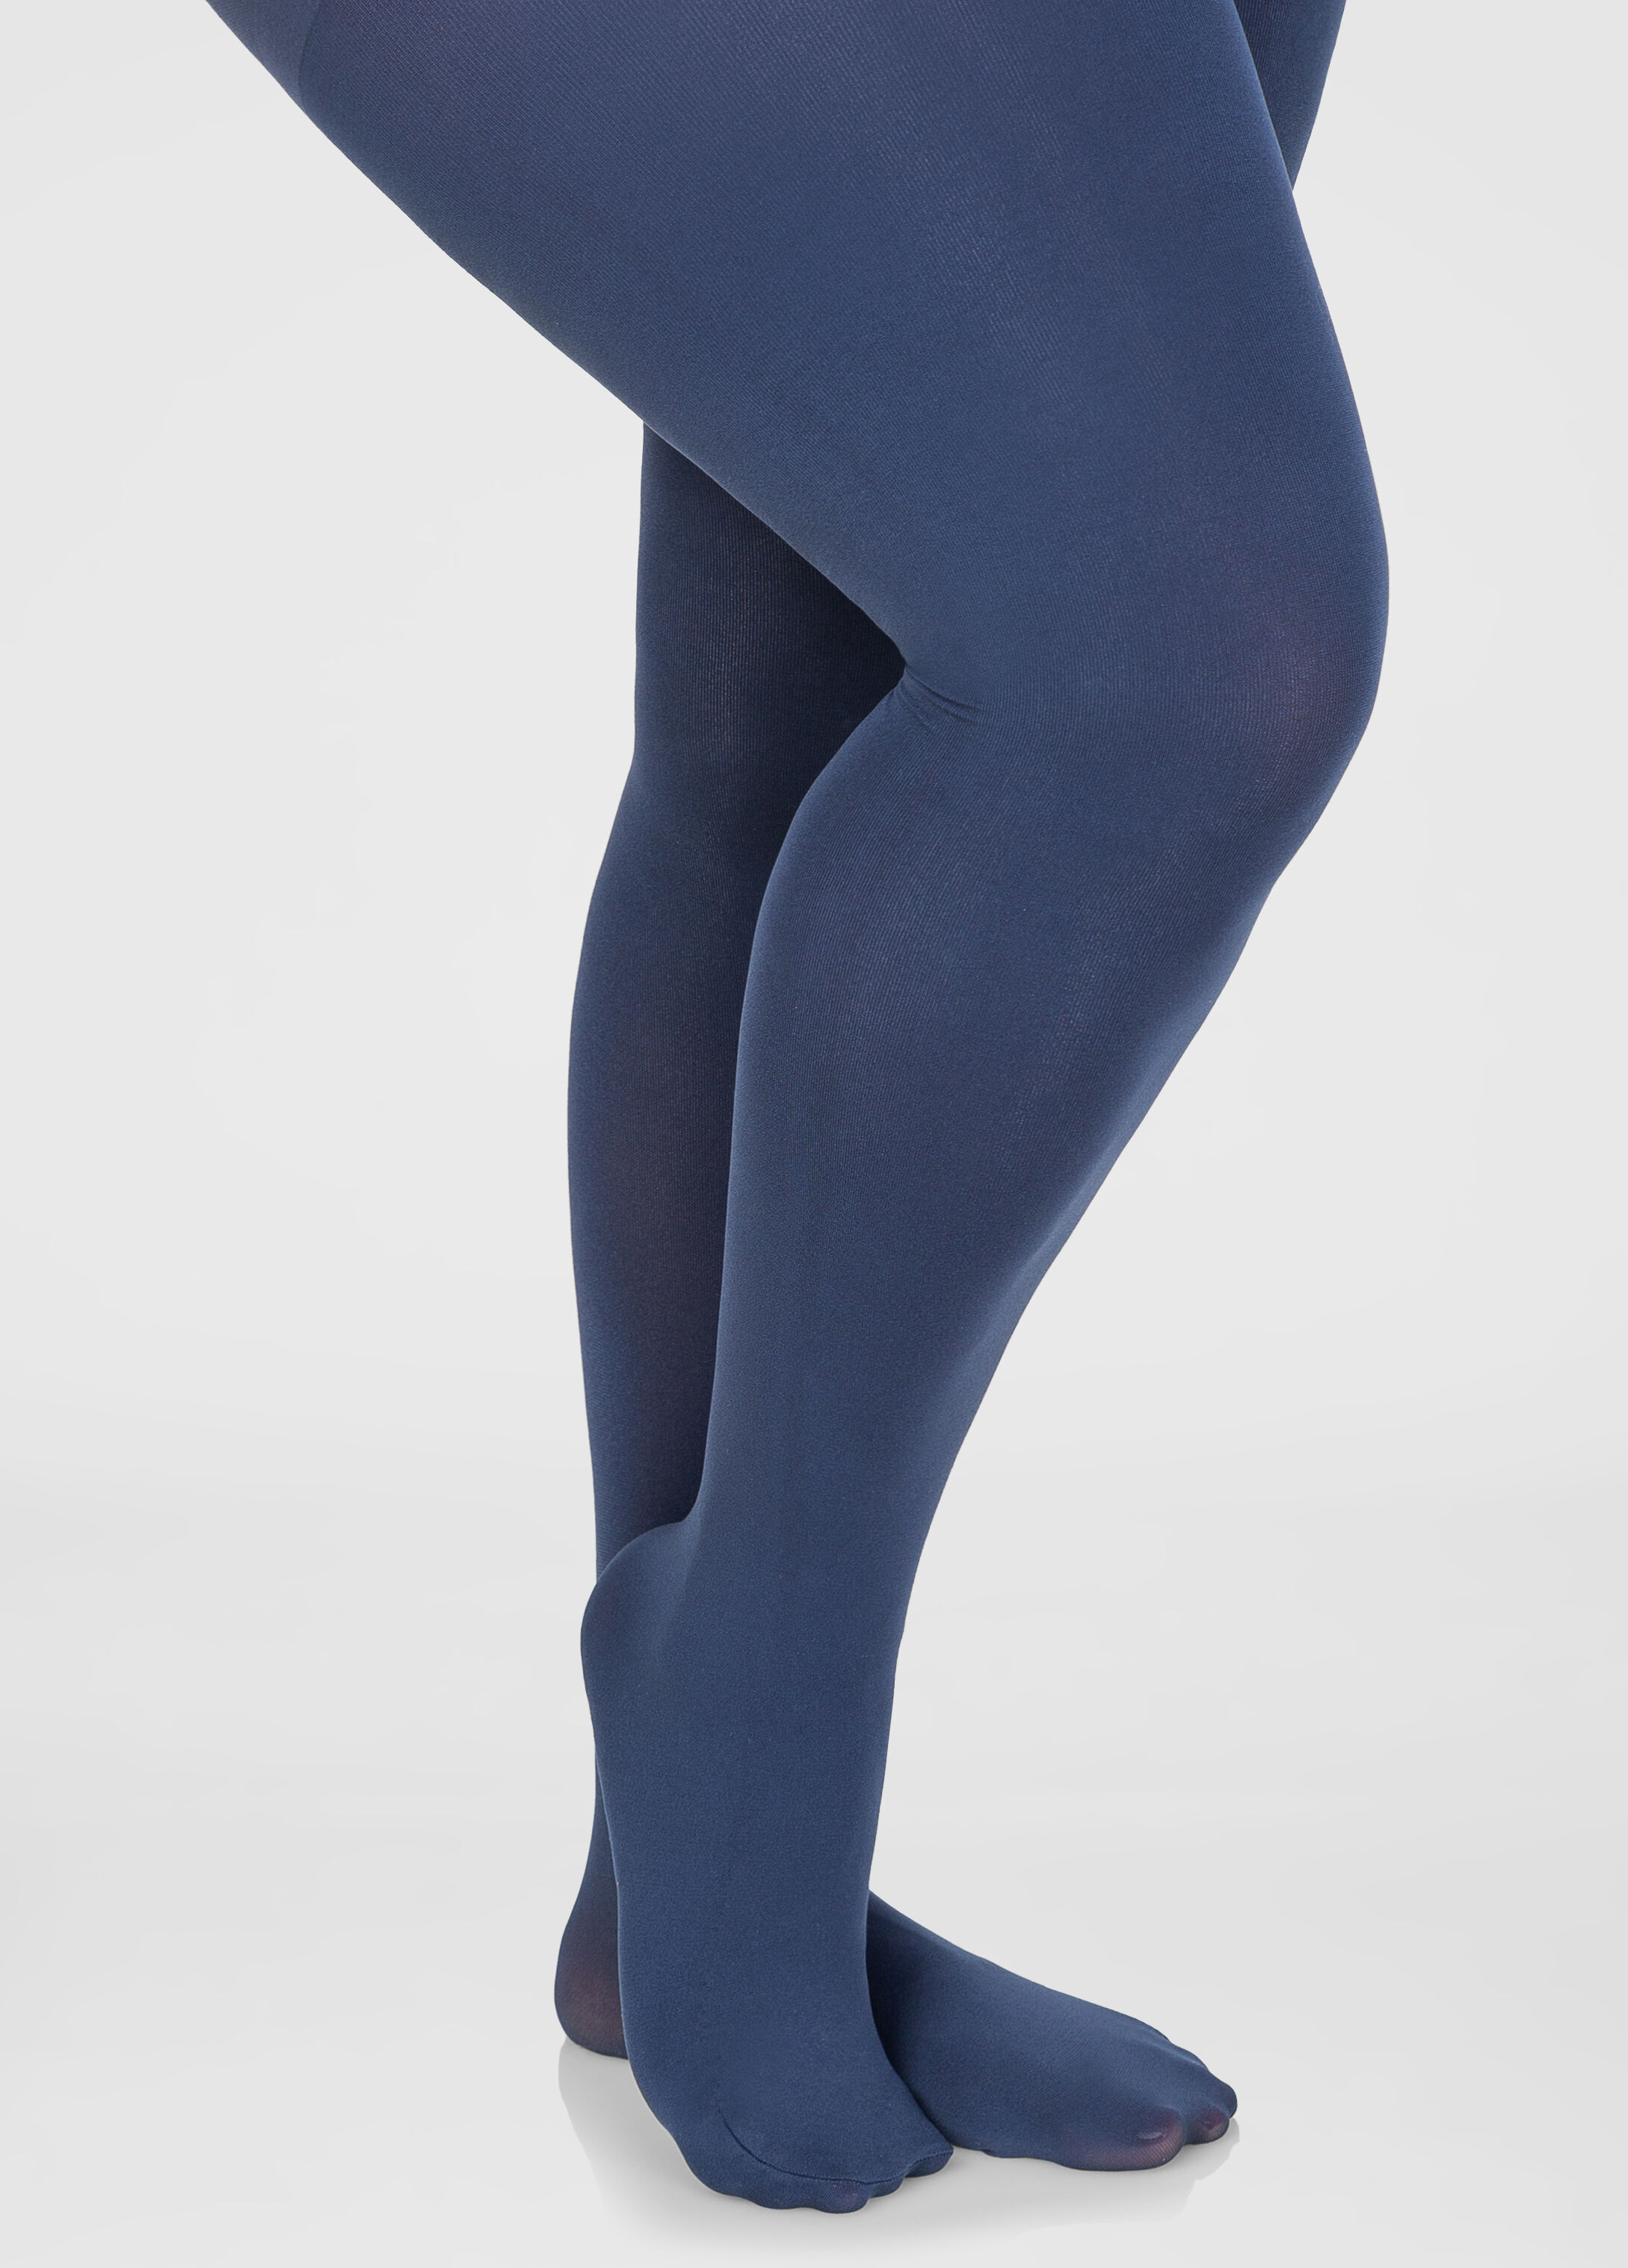 Opaque Tights Navy - Intimates